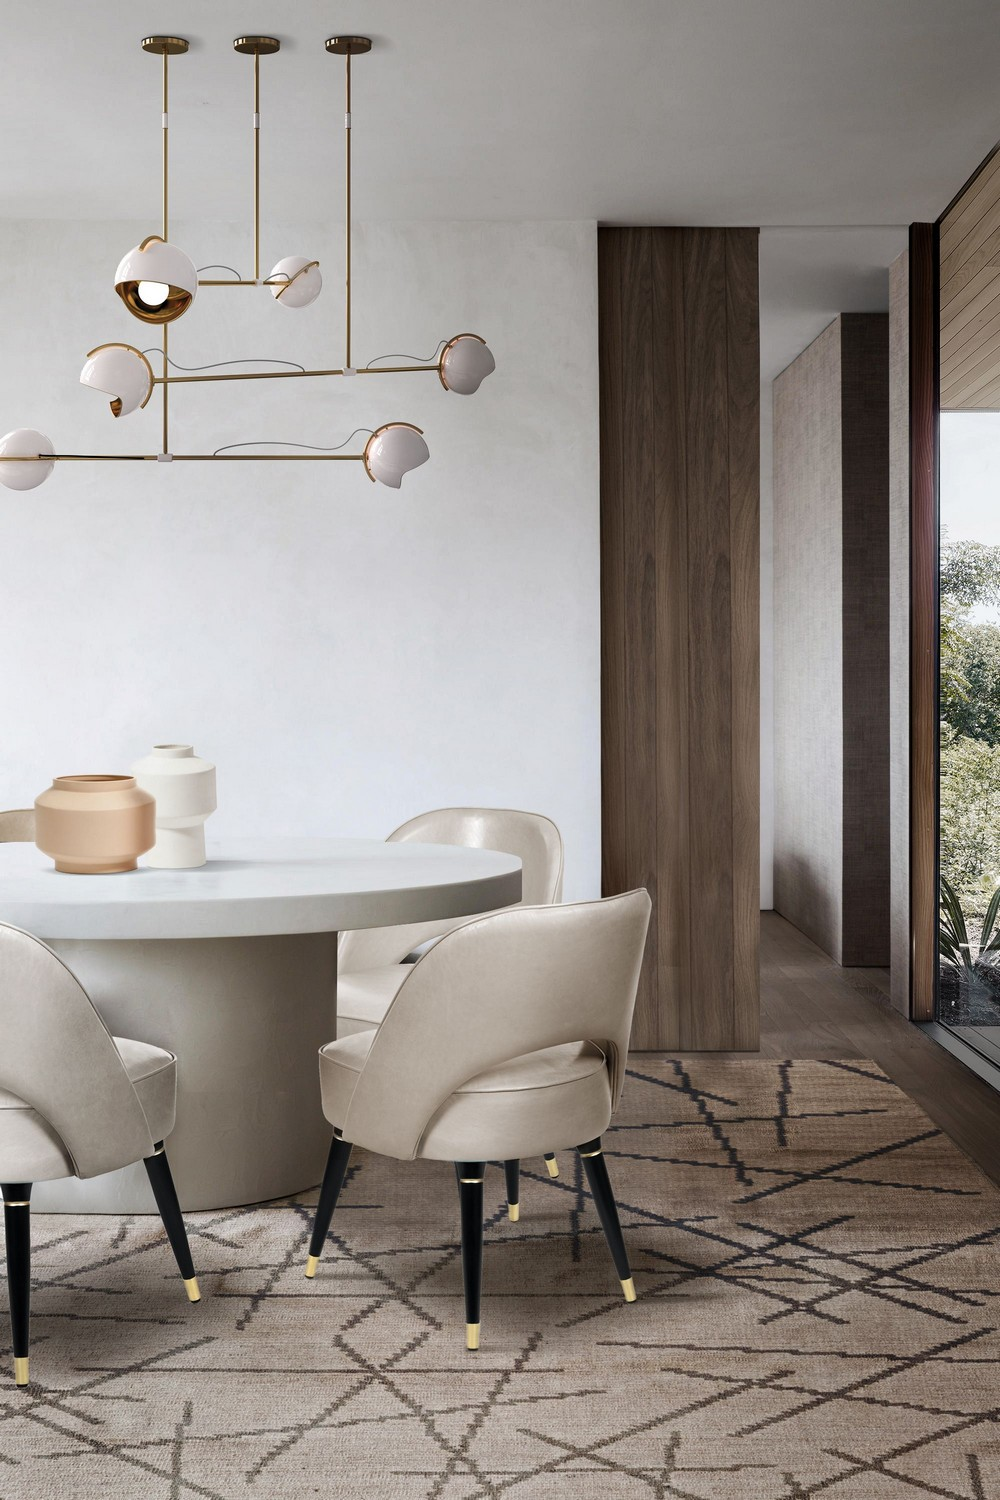 Design That's Barely There: Dining Room Ideas With Nude Tones dining room ideas Design That's Barely There: Dining Room Ideas With Nude Tones d1dQBa5A